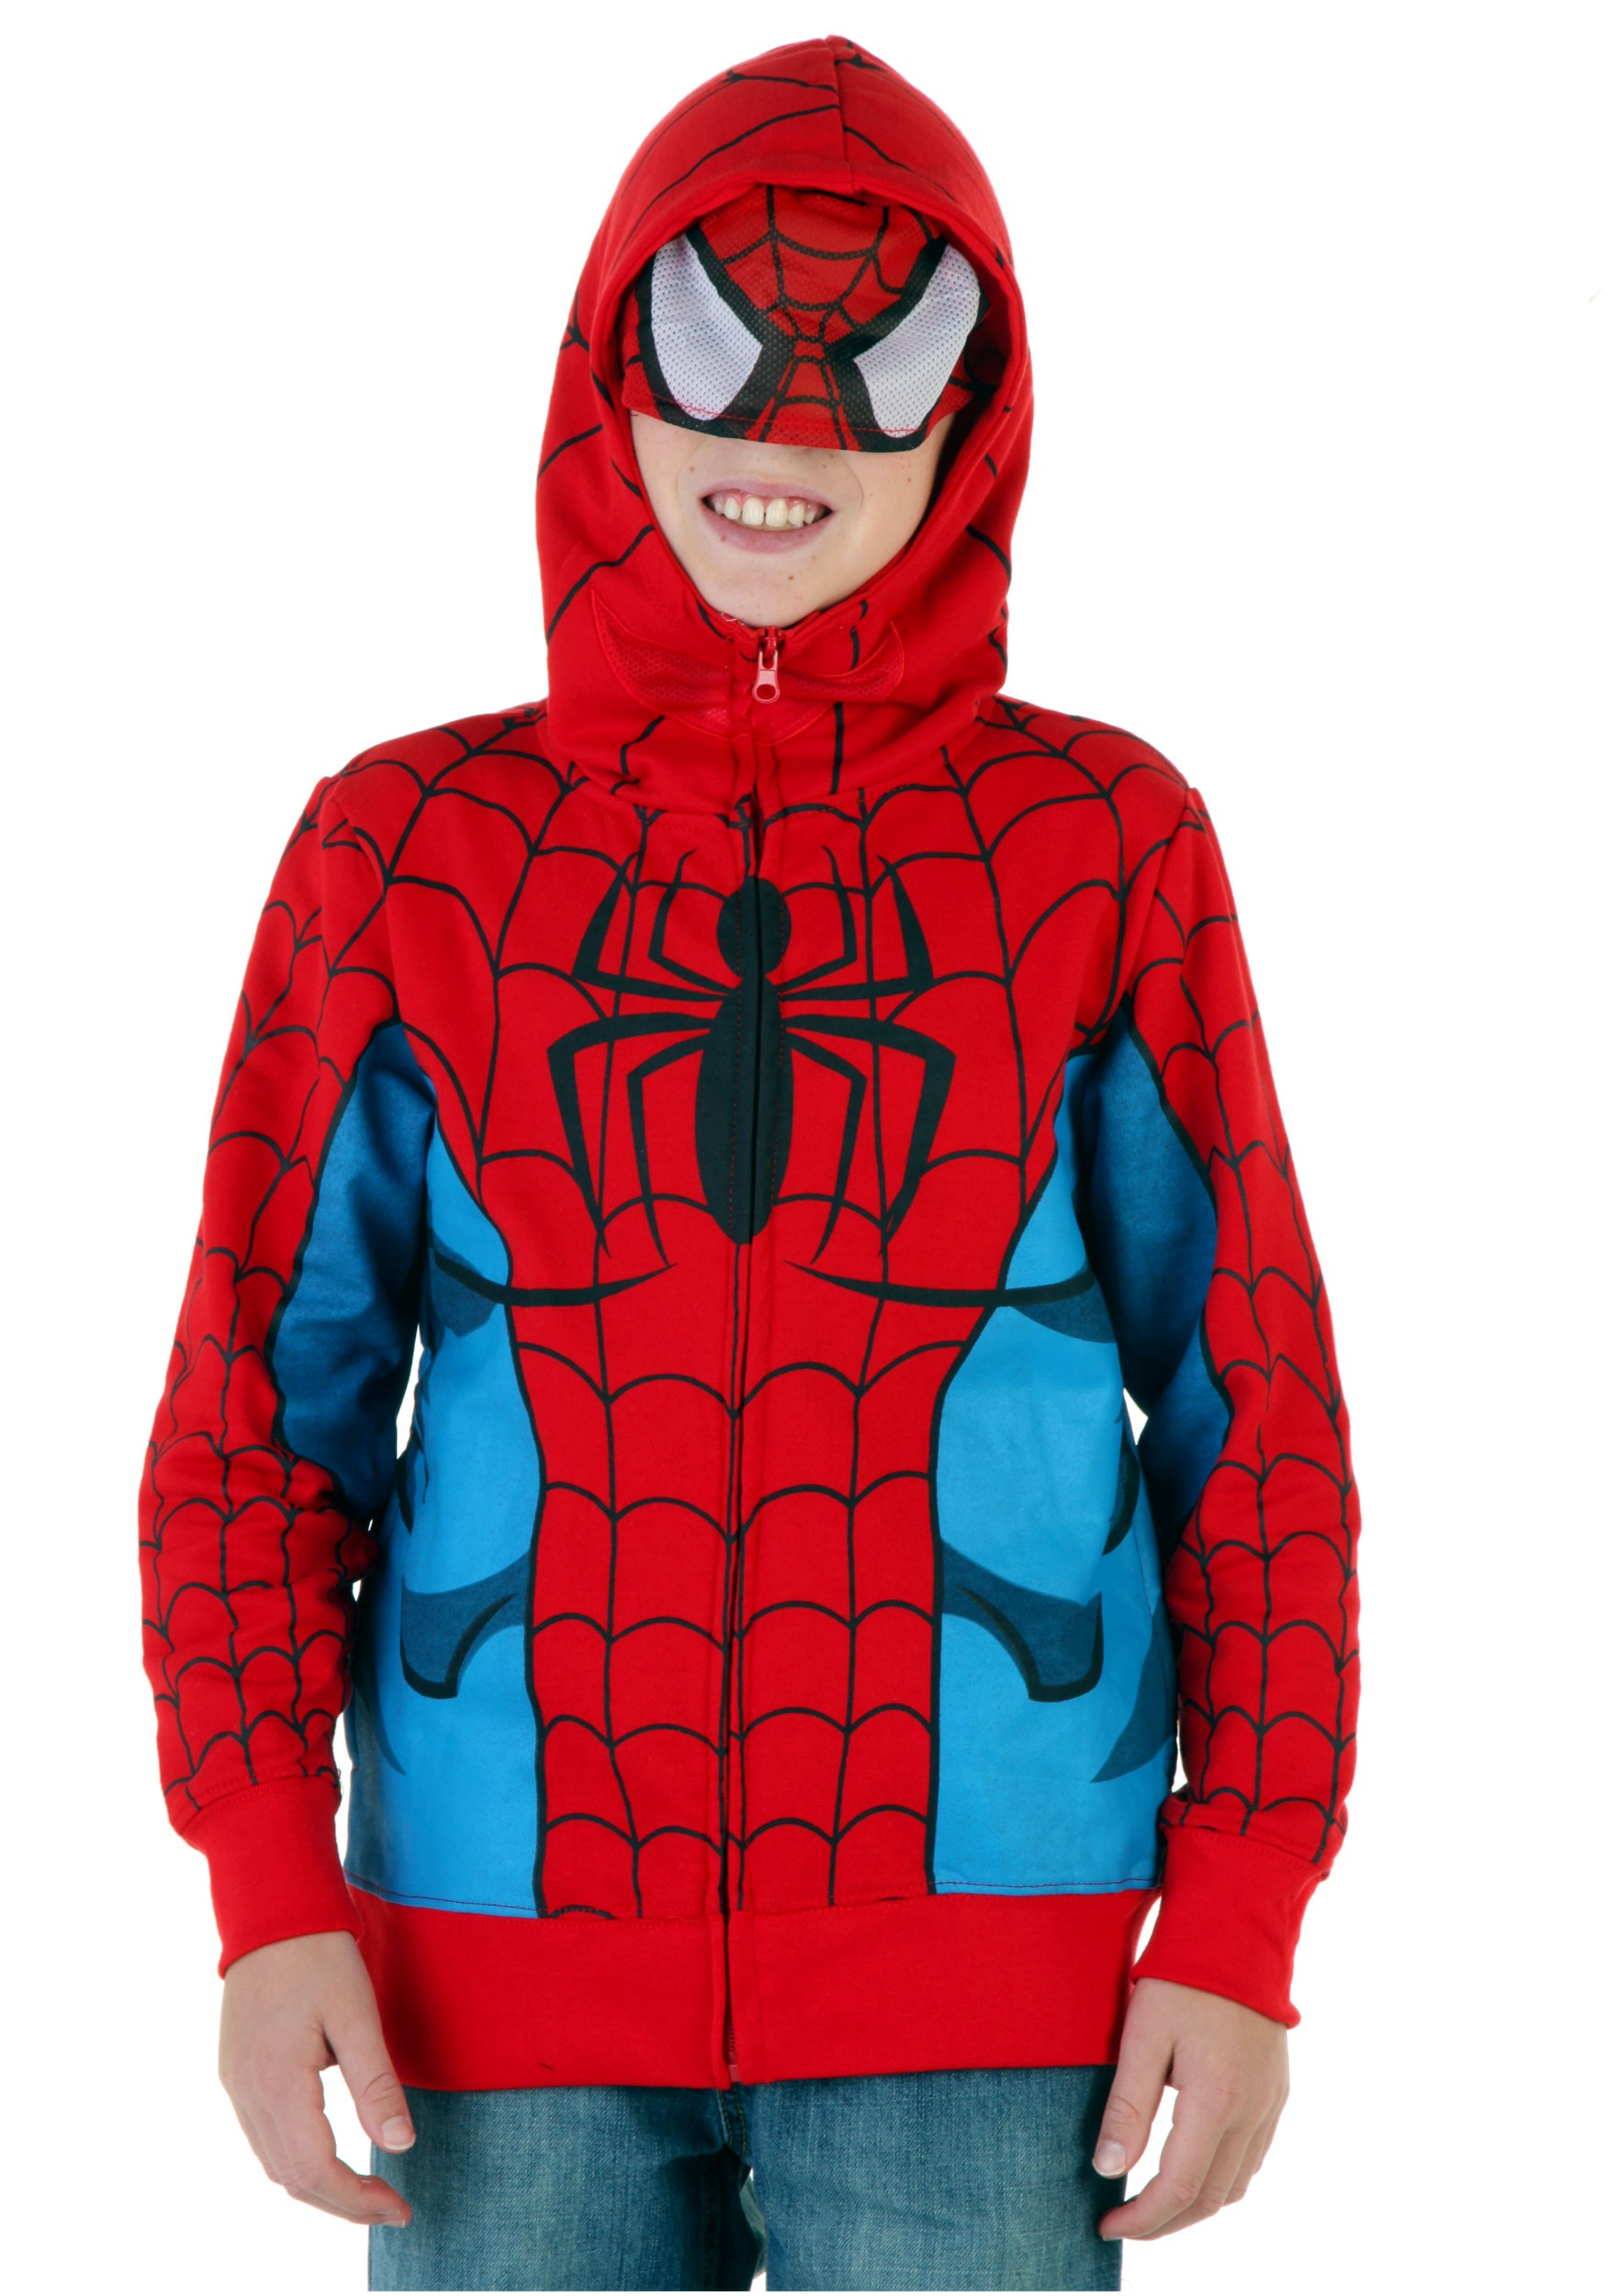 Youth Spider-Man Costume Hoodie  sc 1 st  Halloween Costumes & Youth Spider-Man Costume Hoodie - Halloween Costumes